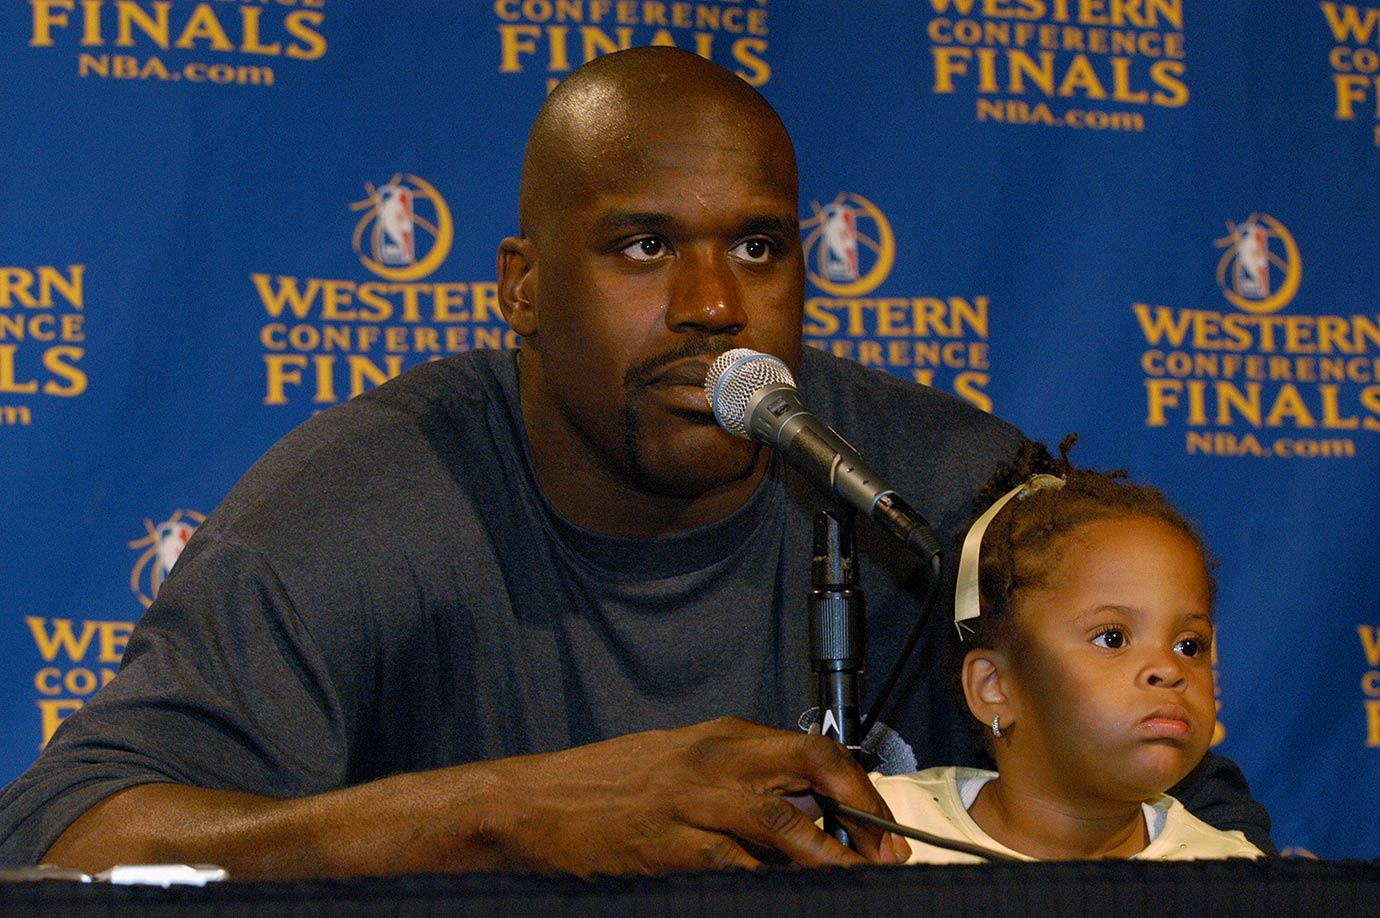 Shaquille O'Neal and daughter Amirah